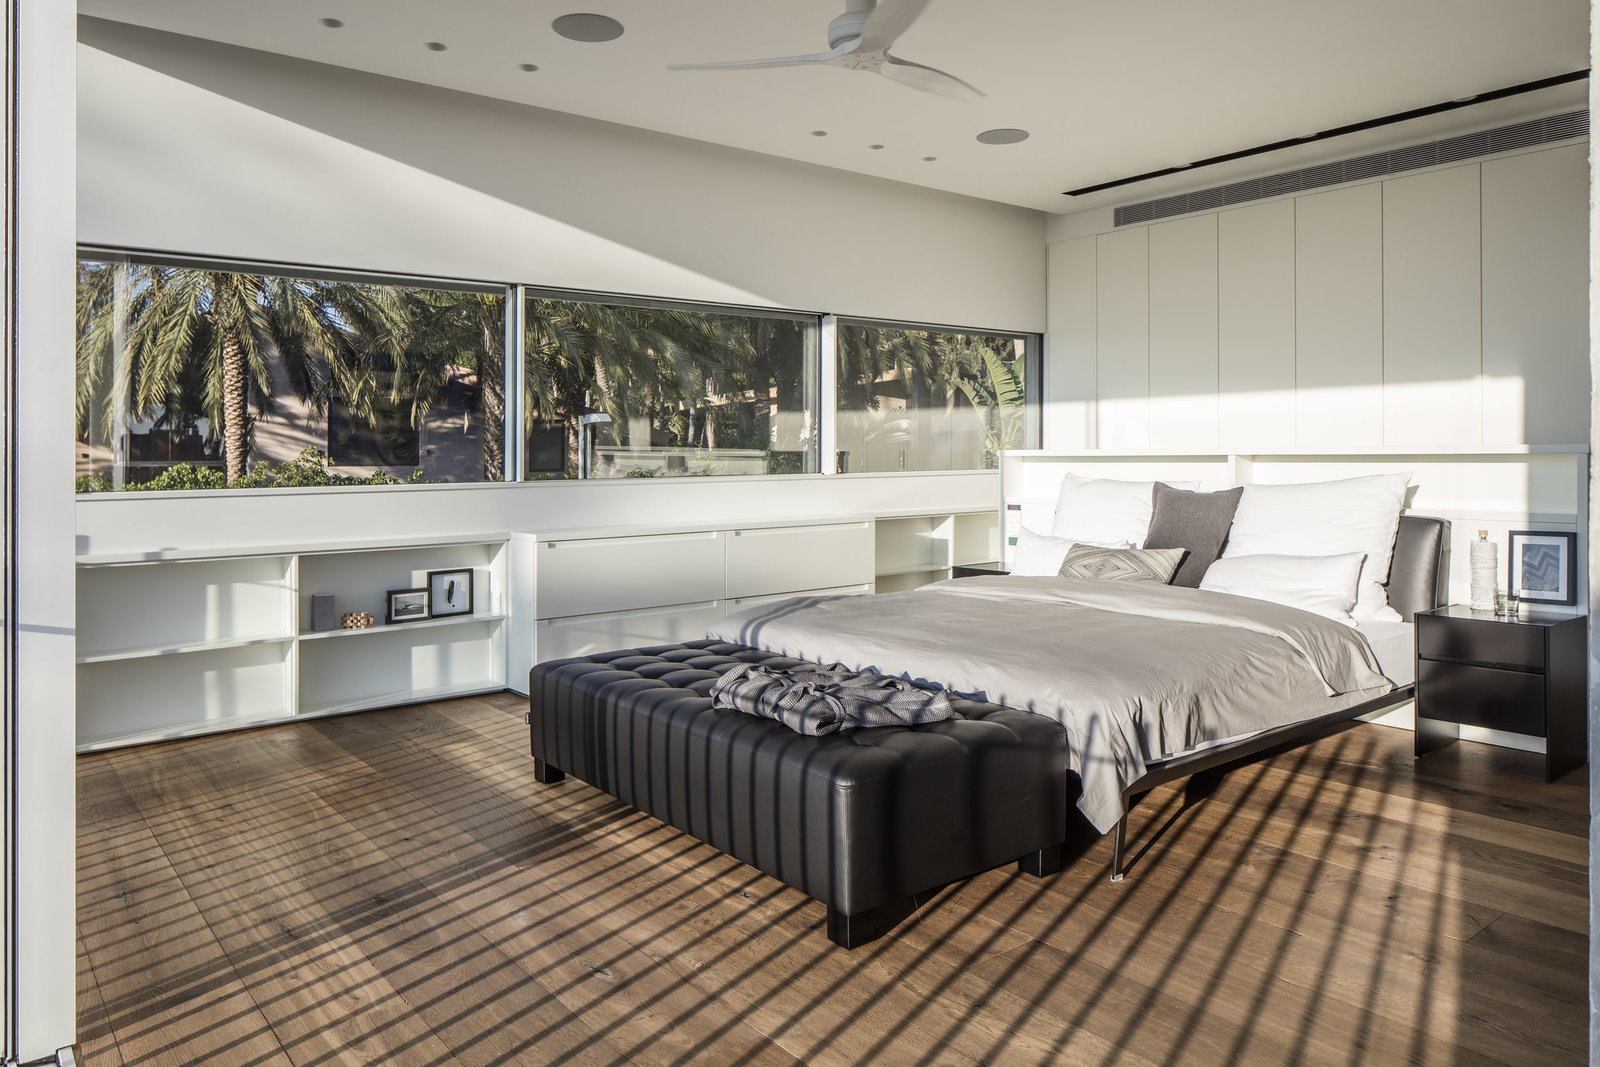 View of the master bedroom  The Dual House by Axelrod Architects